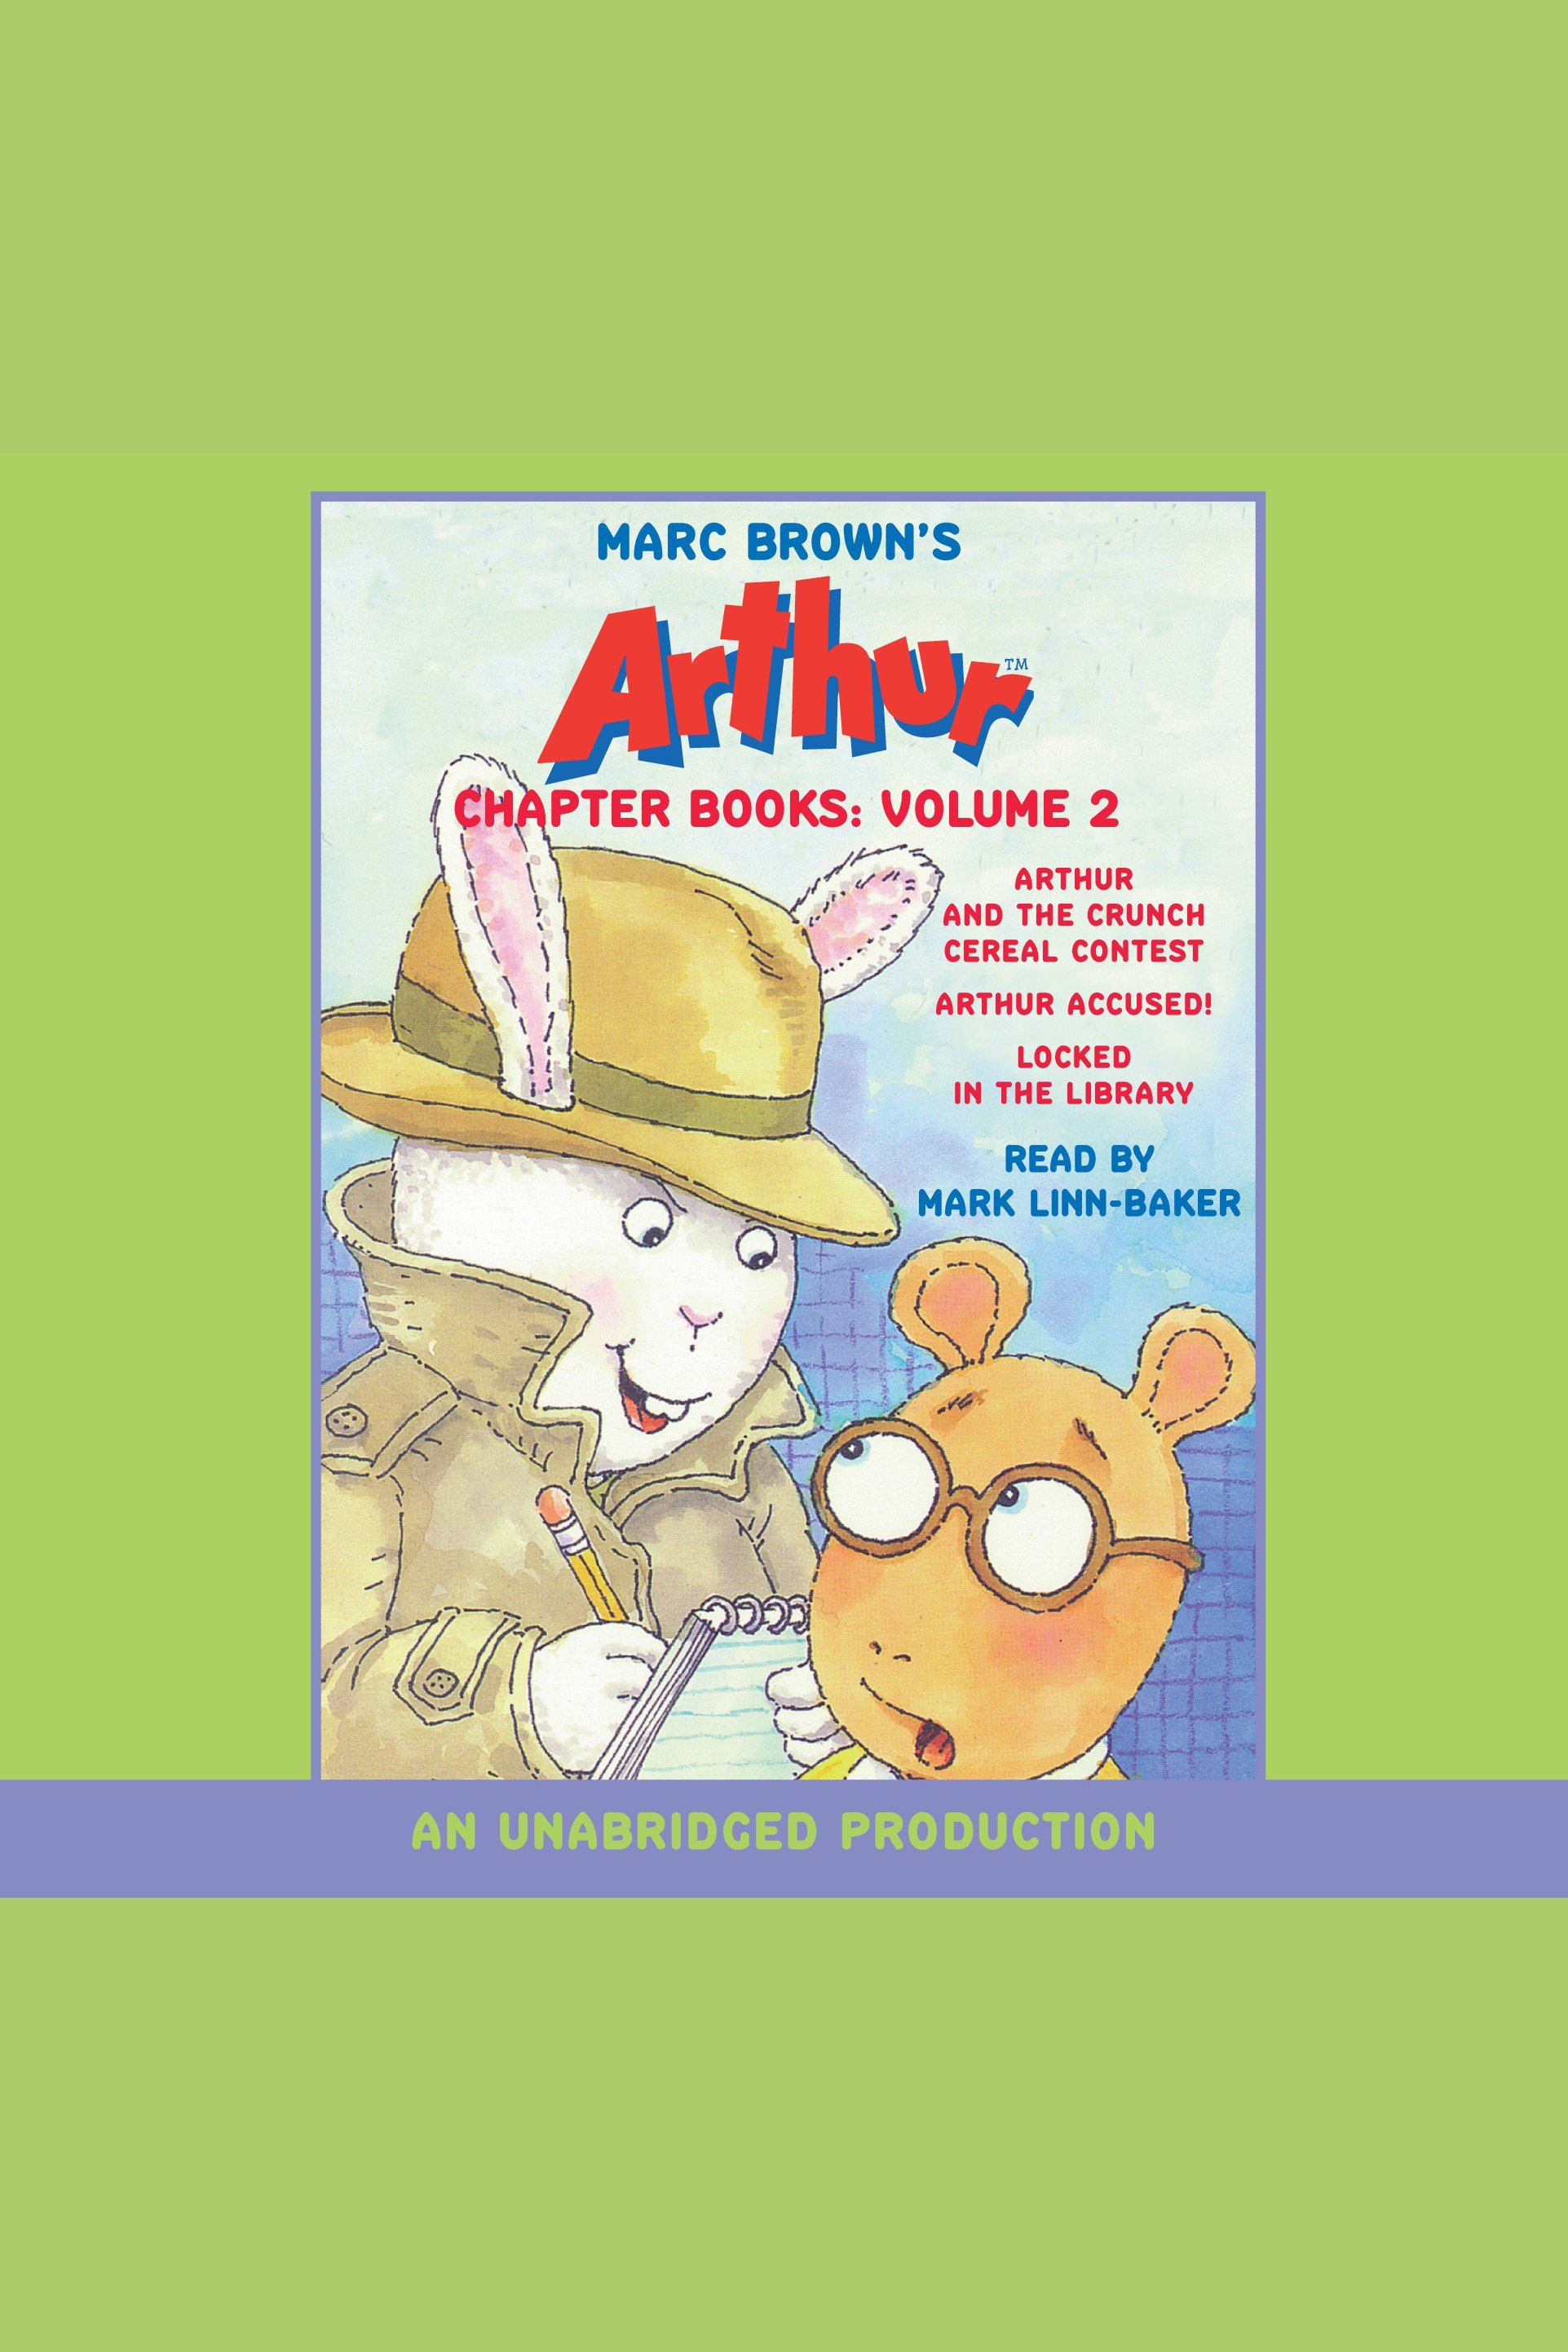 Marc Brown's Arthur chapter books: Volume 2 cover image